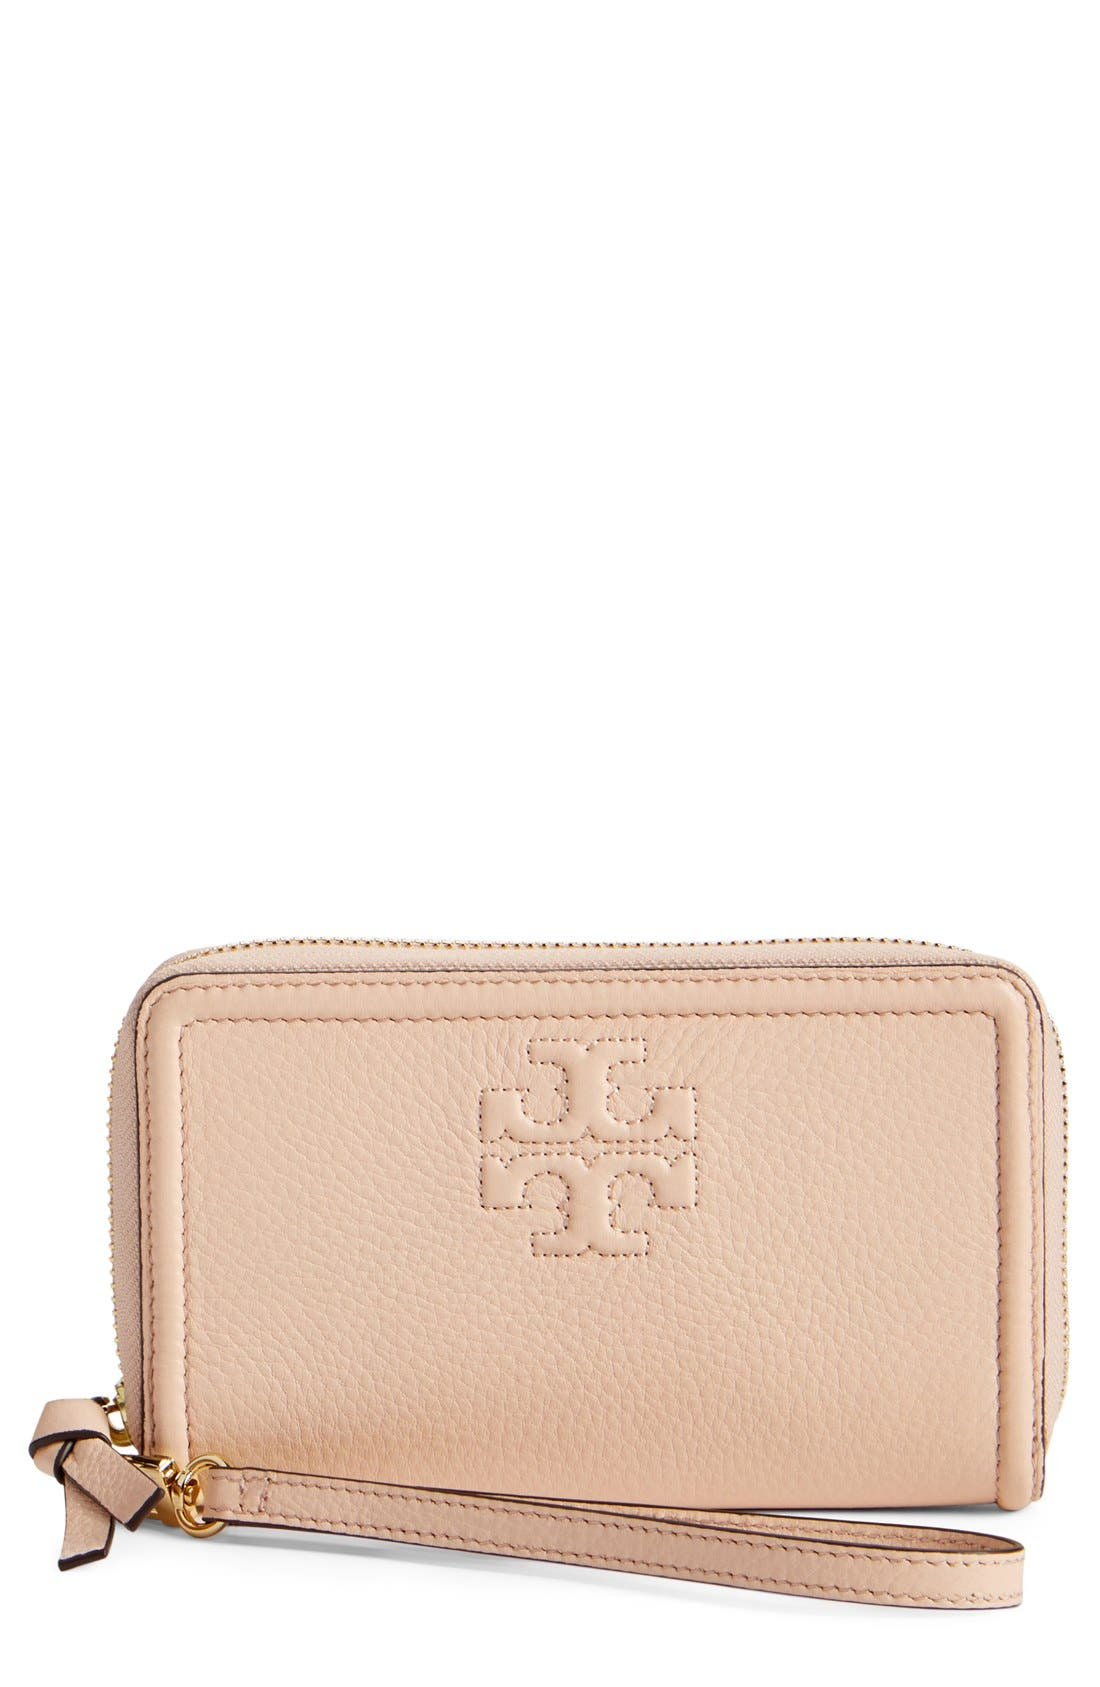 Alternate Image 1 Selected - Tory Burch 'Thea' Leather Wristlet